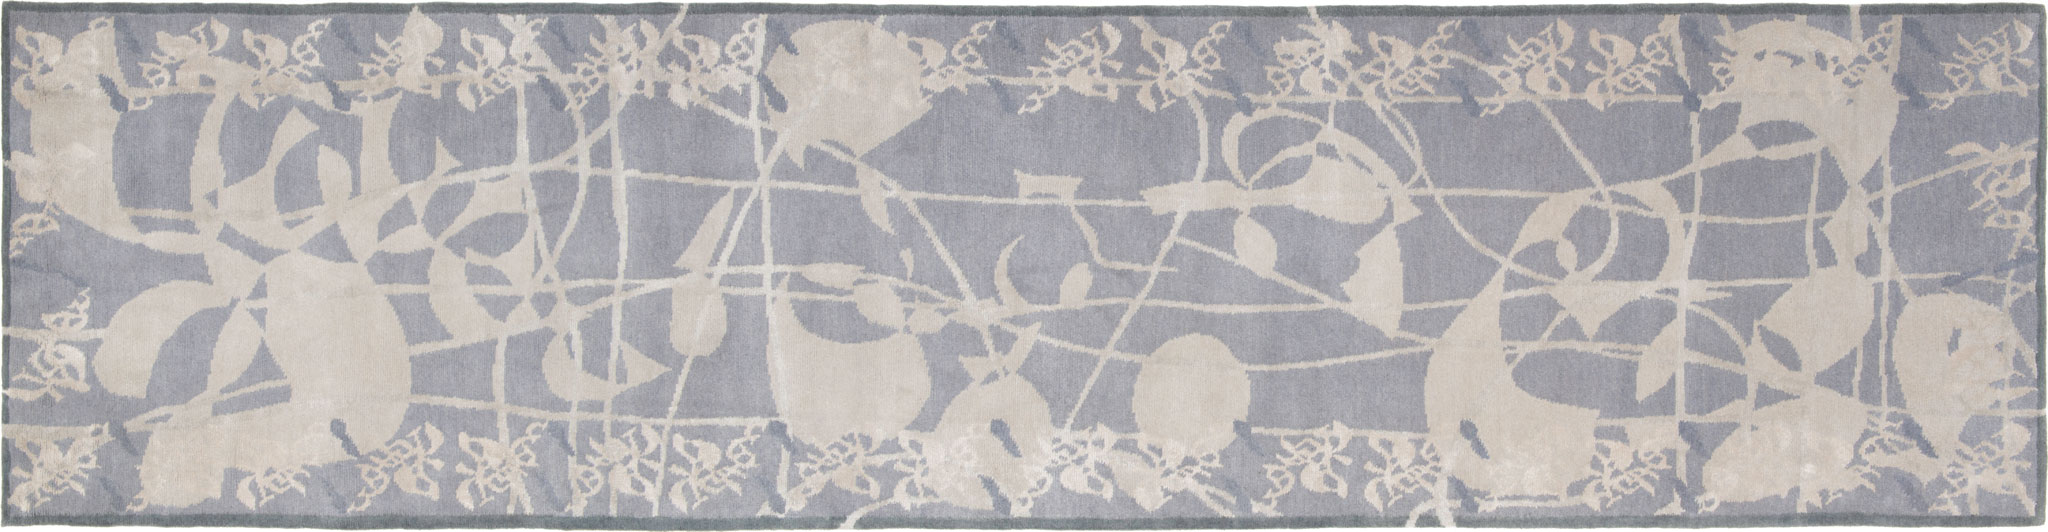 'Silver Runner' is part of Amy Helfand's 'Be Good Do Good' Collection - wool and silk handknotted in Nepal. | Image courtesy of Amy Helfand.